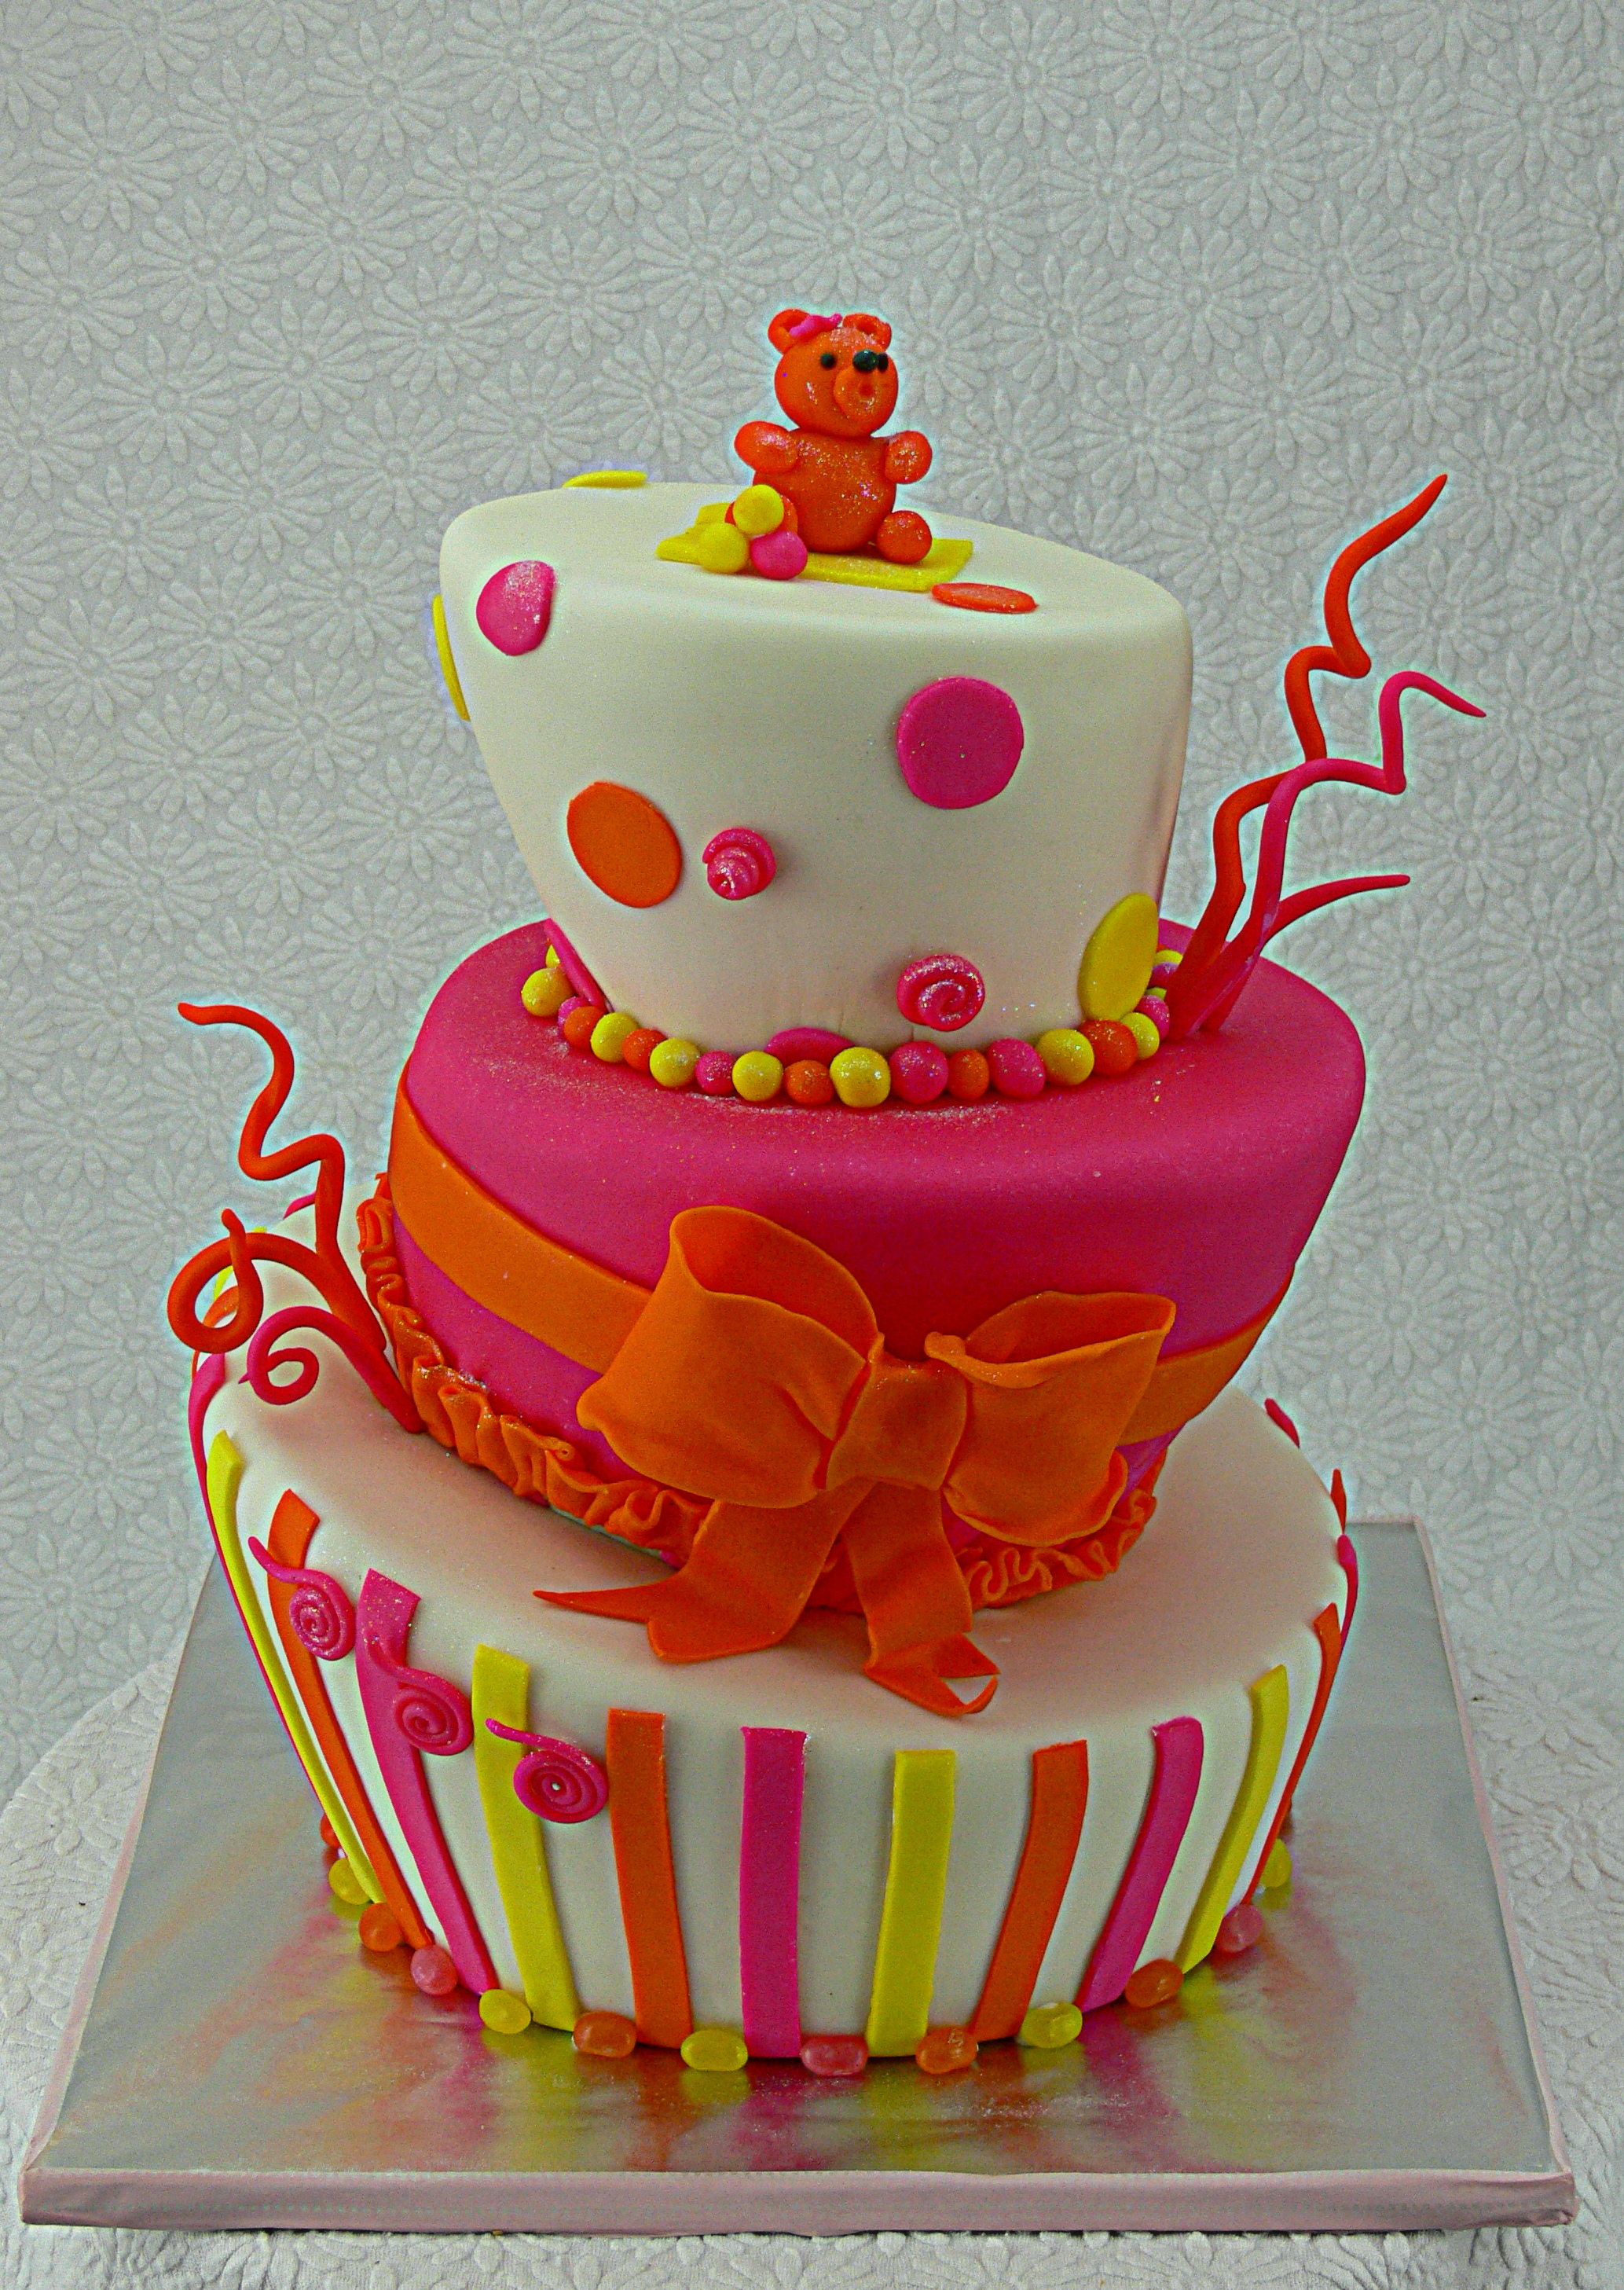 Neon Teddy Bear Birthday Cake.jpg